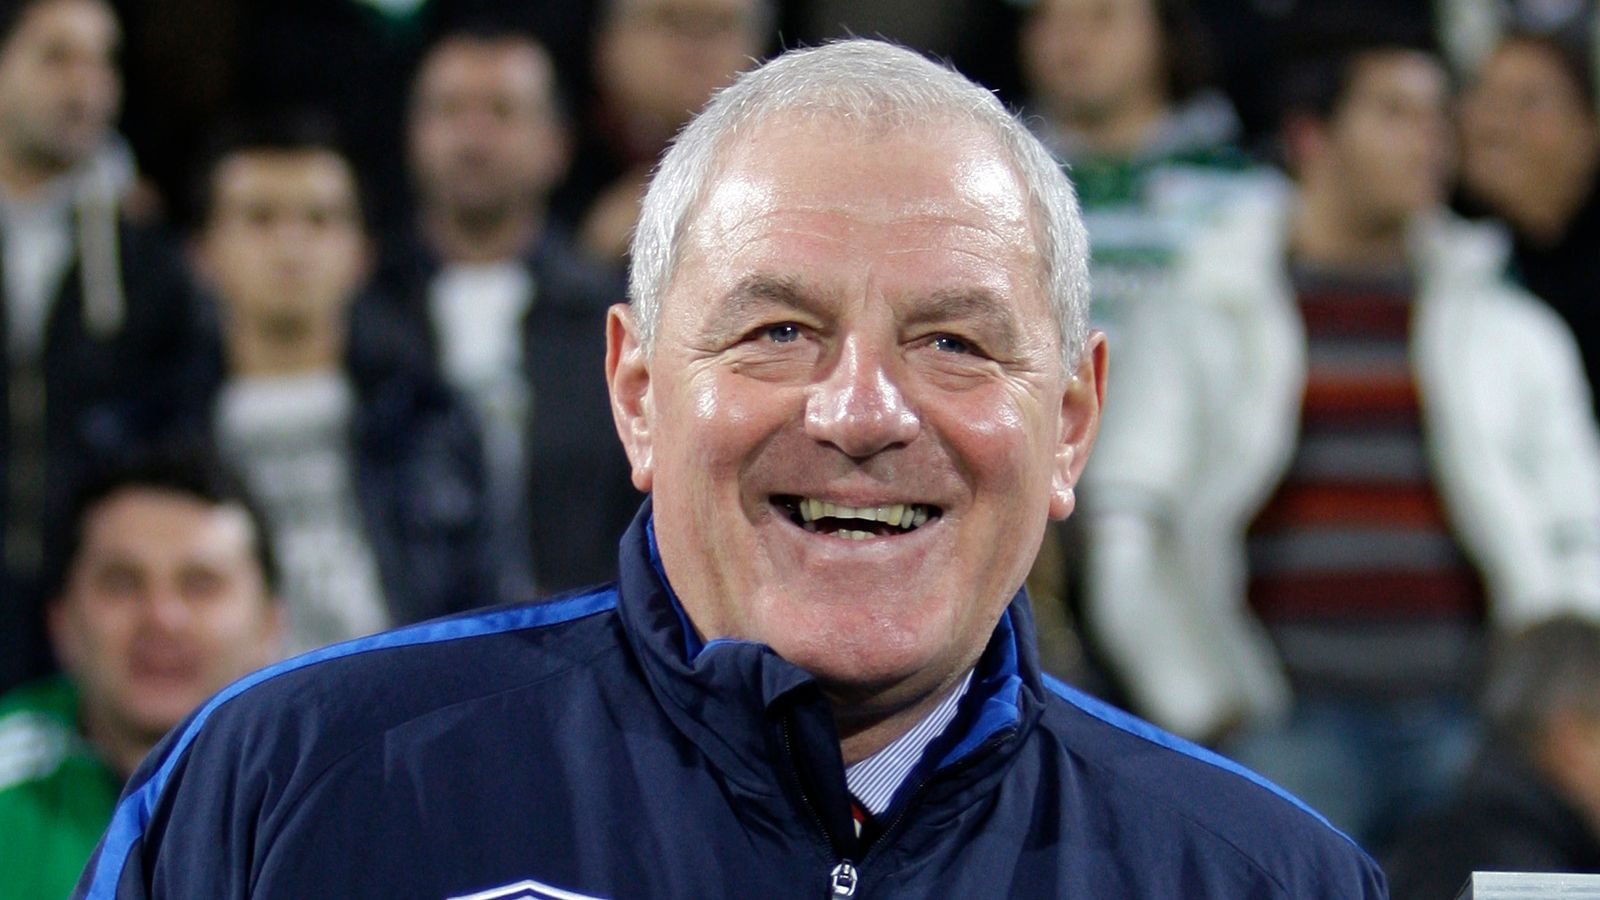 Walter Smith: The games at Rangers, Everton and Scotland that defined his managerial career